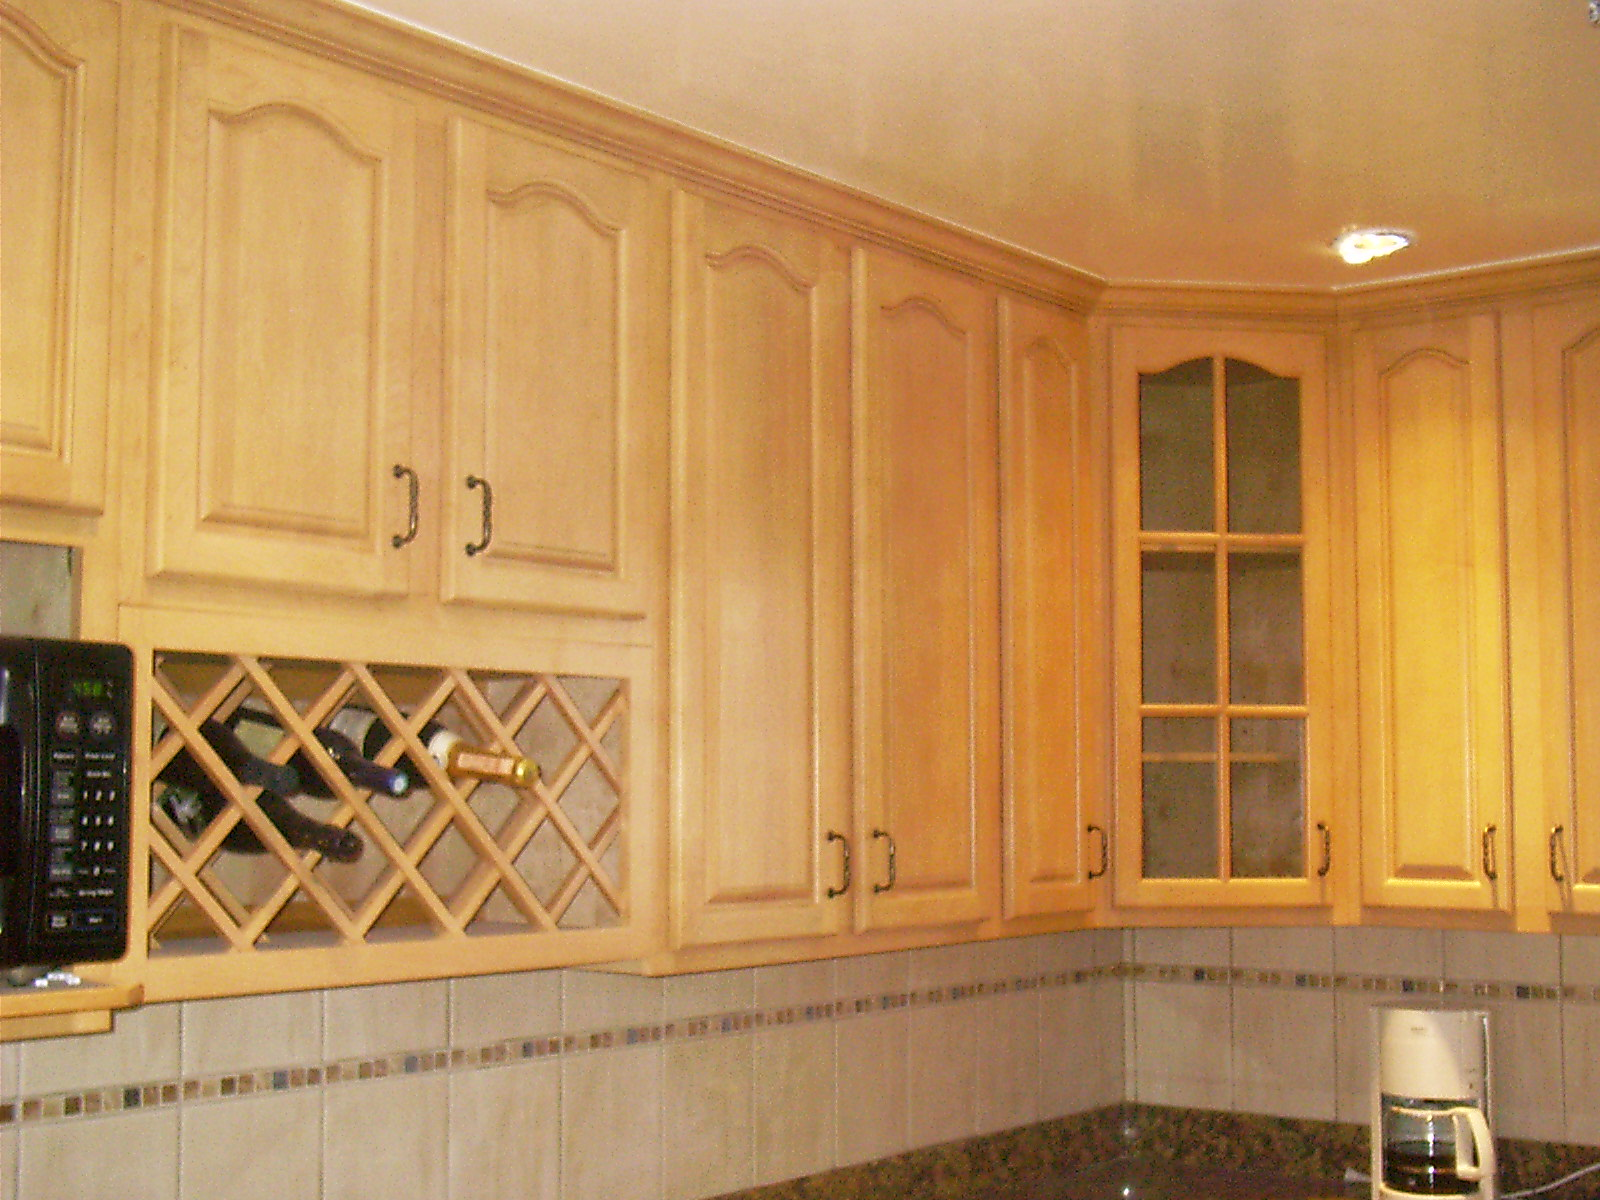 The Best Types of Wood for Building Cabinets | thebasicwoodworking.